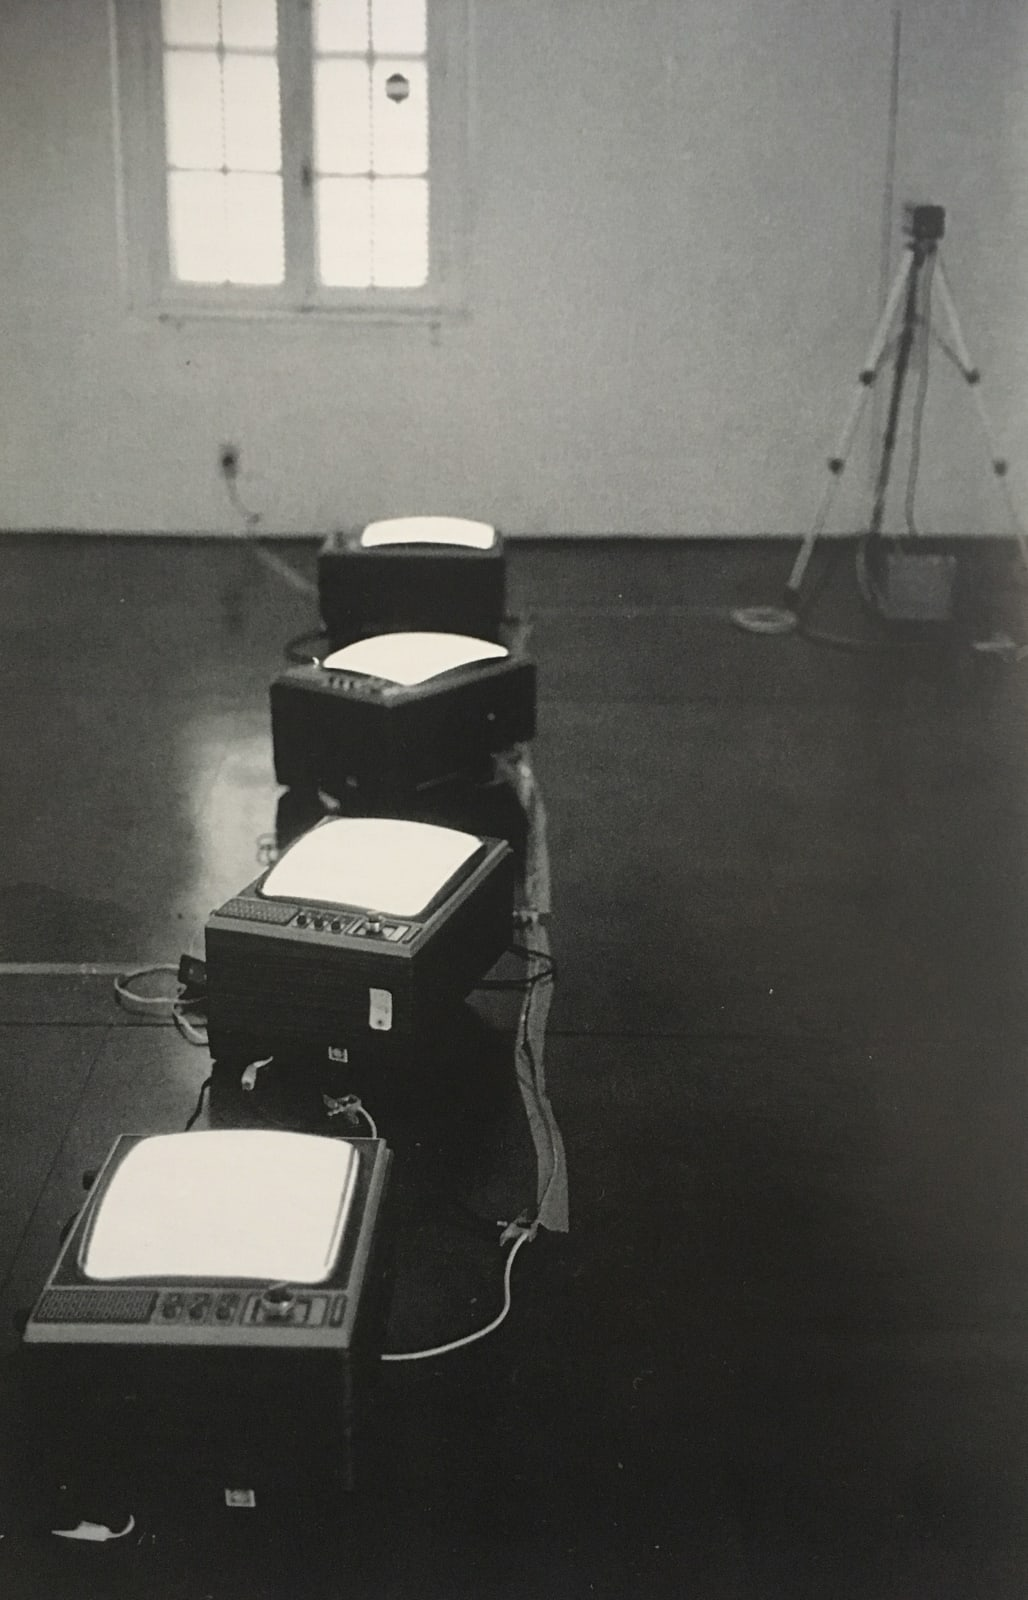 Third Commentary, 1981 On view at Espaço NO, Porto Alegre, Brazil, 1981